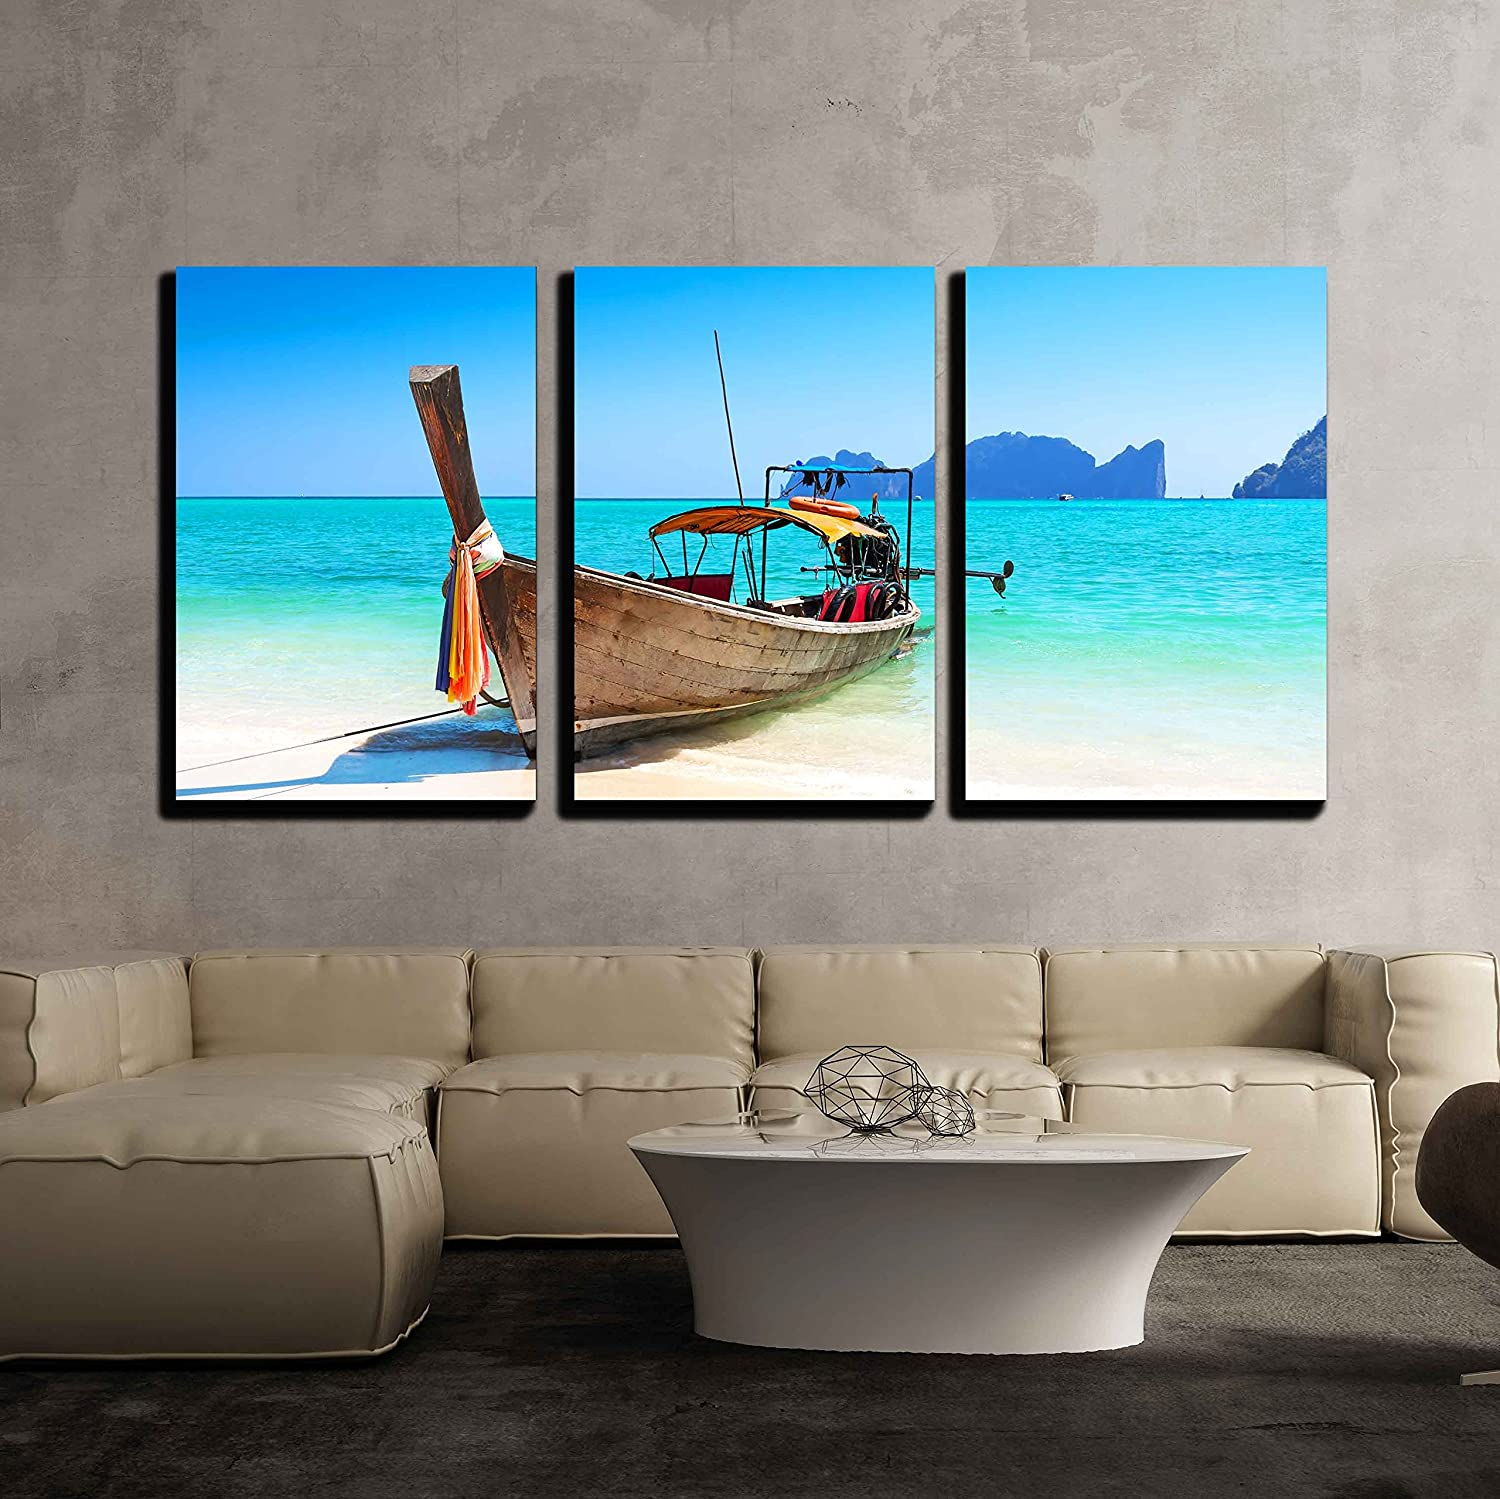 wall26 3 Piece Canvas Wall Art Long Boat and Tropical Beach